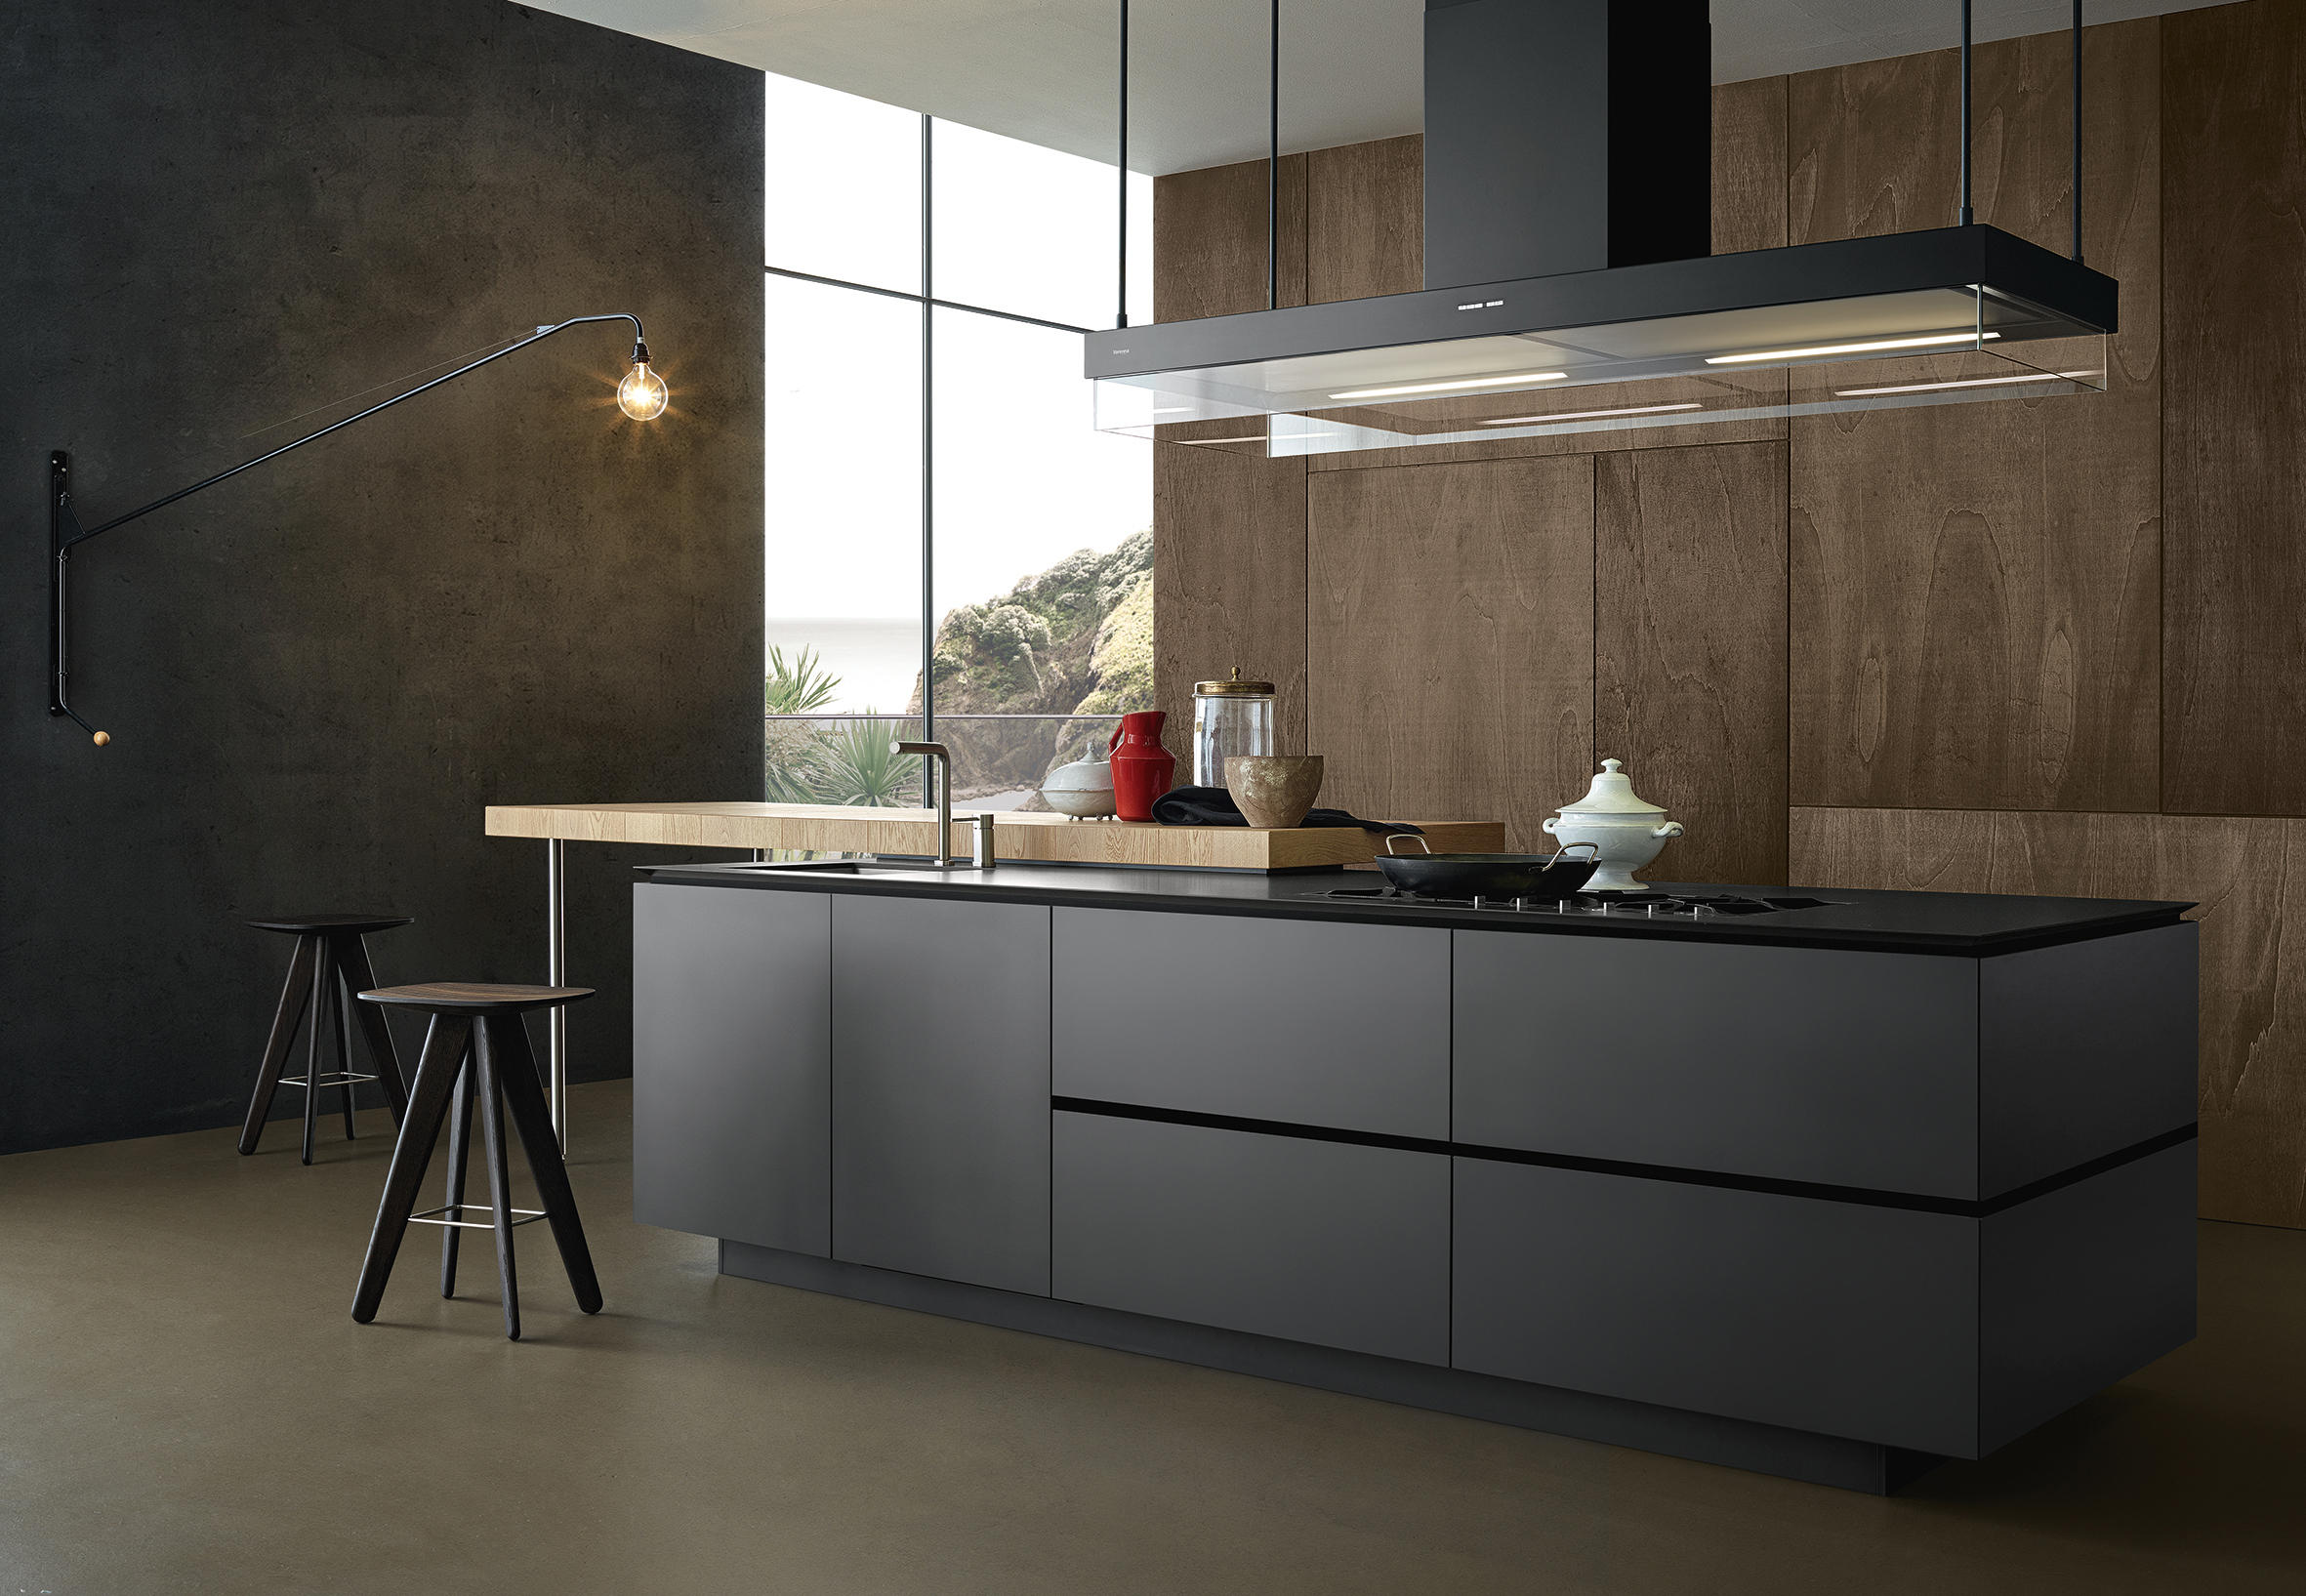 Artex Island Kitchens From Poliform Architonic